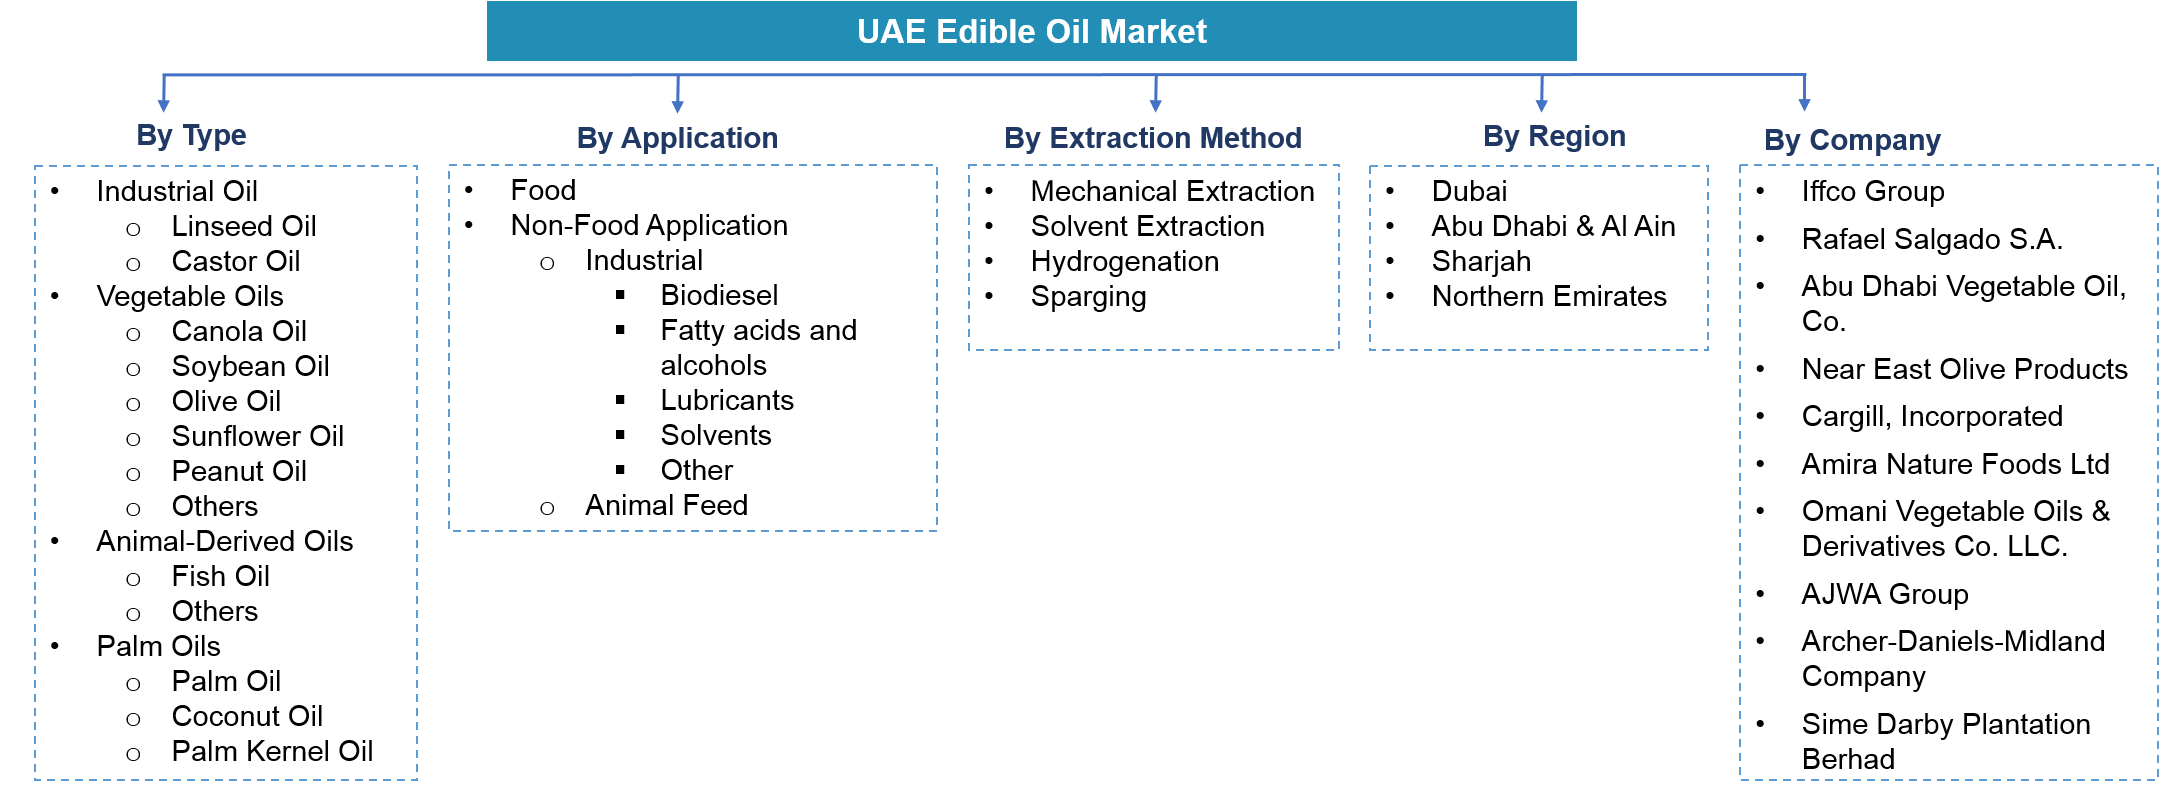 UAE Edible Oil Market Segmentation